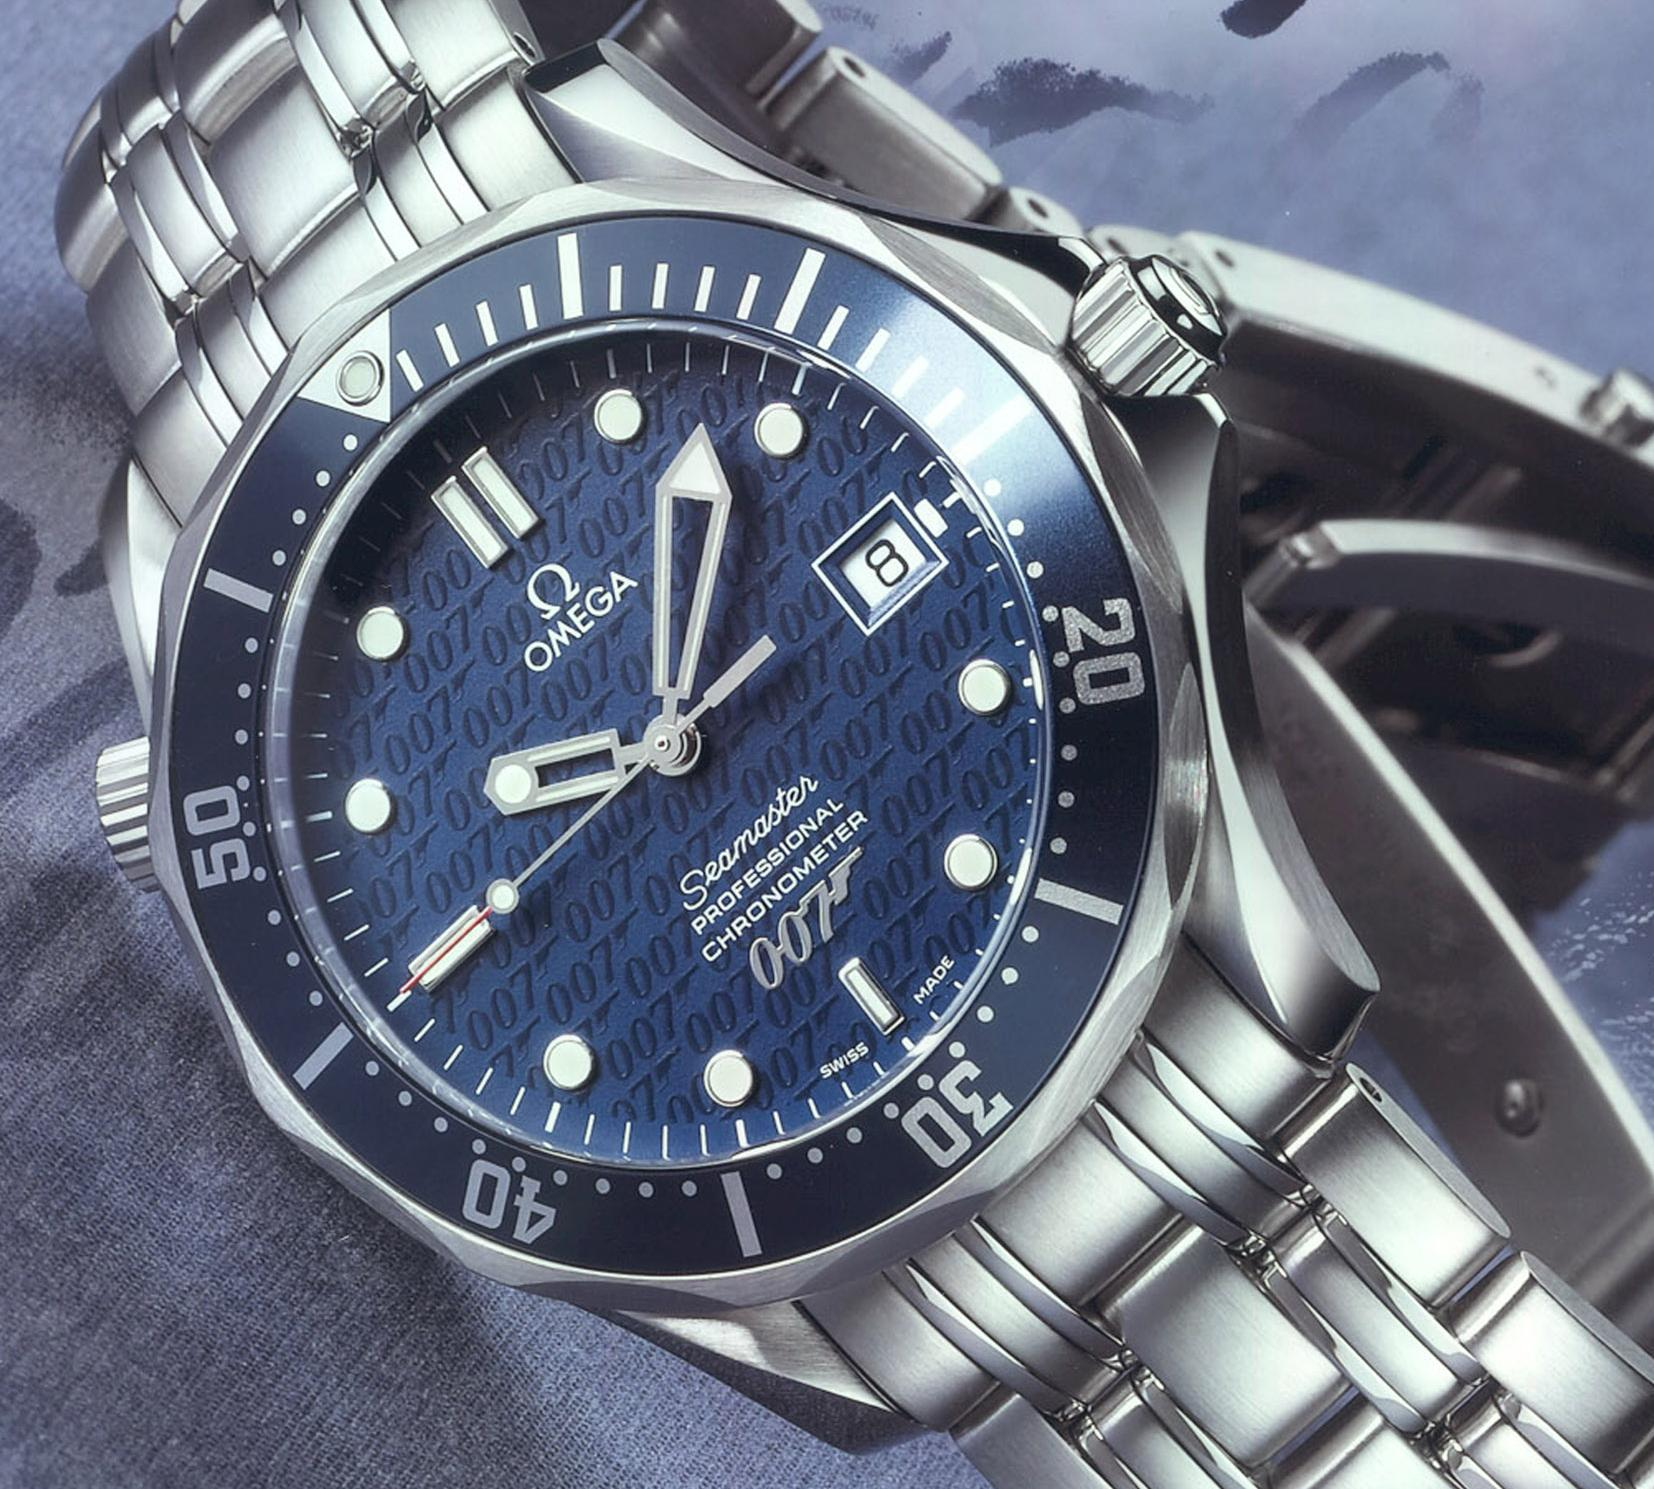 Omega Watches Wallpape...